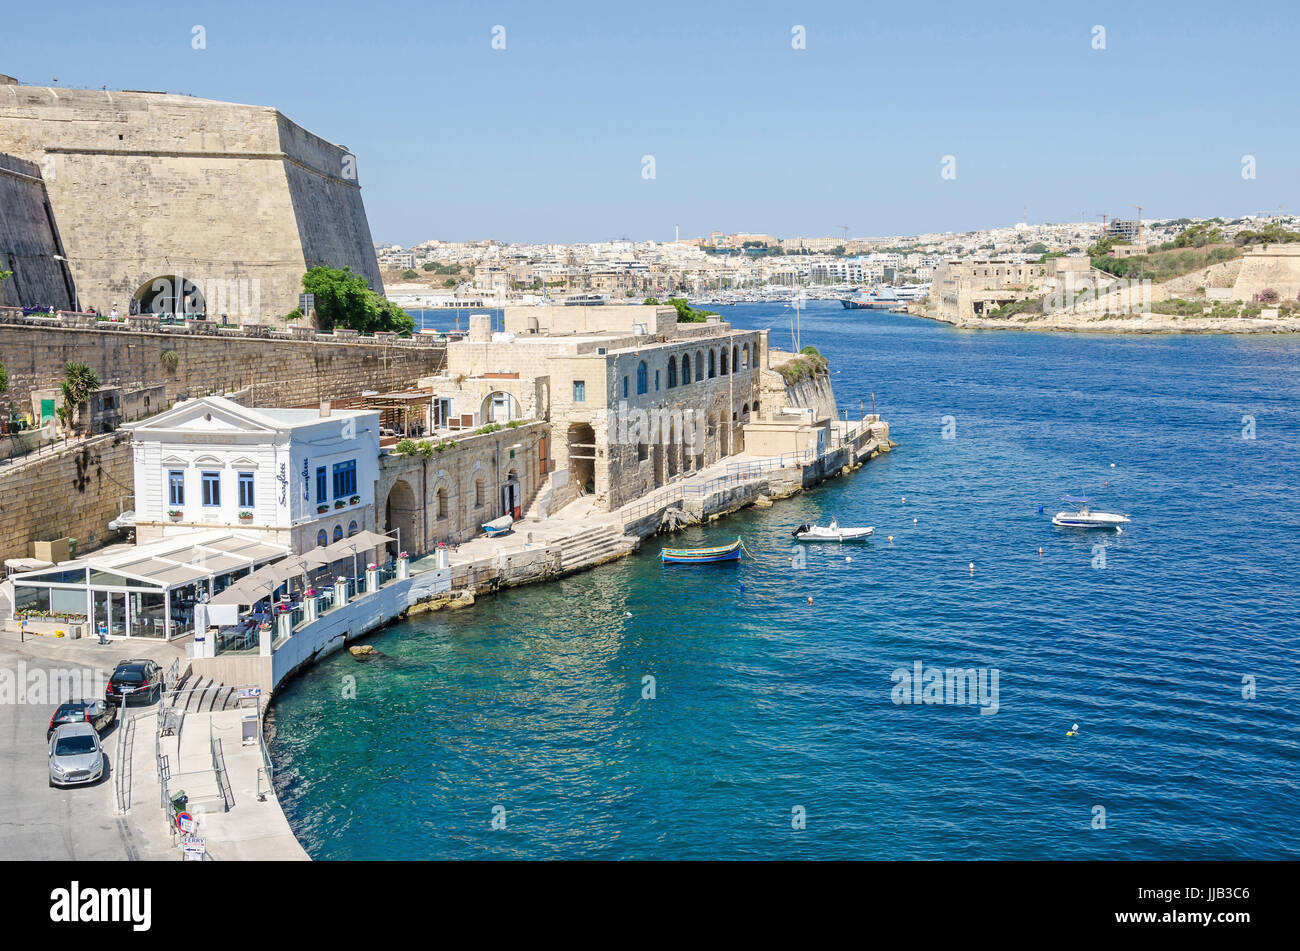 Valletta, Malta - June 4, 2017: View of Marsamxett Harbour with the fortification wall of the bastion, the restaurant - Stock Image